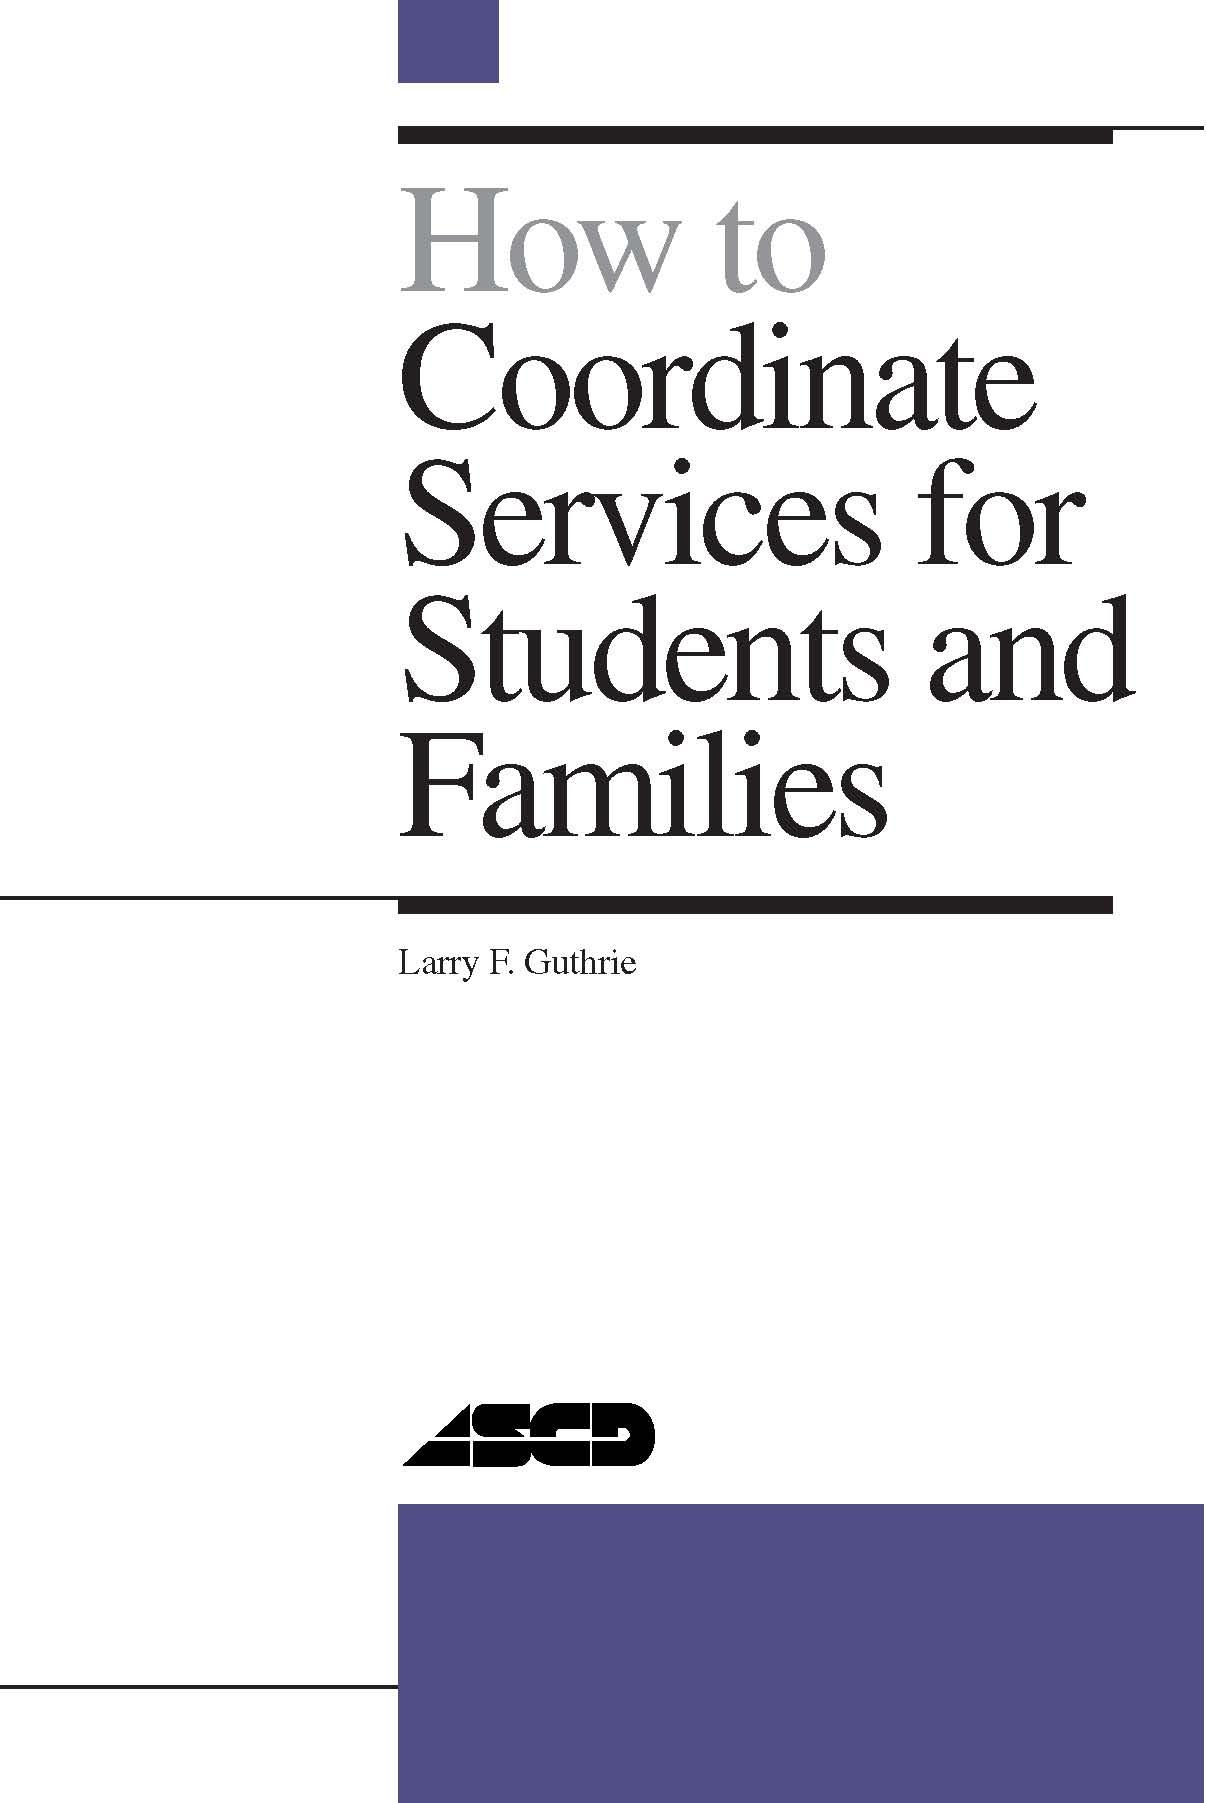 How to Coordinate Services for Students and Families By: Larry Guthrie